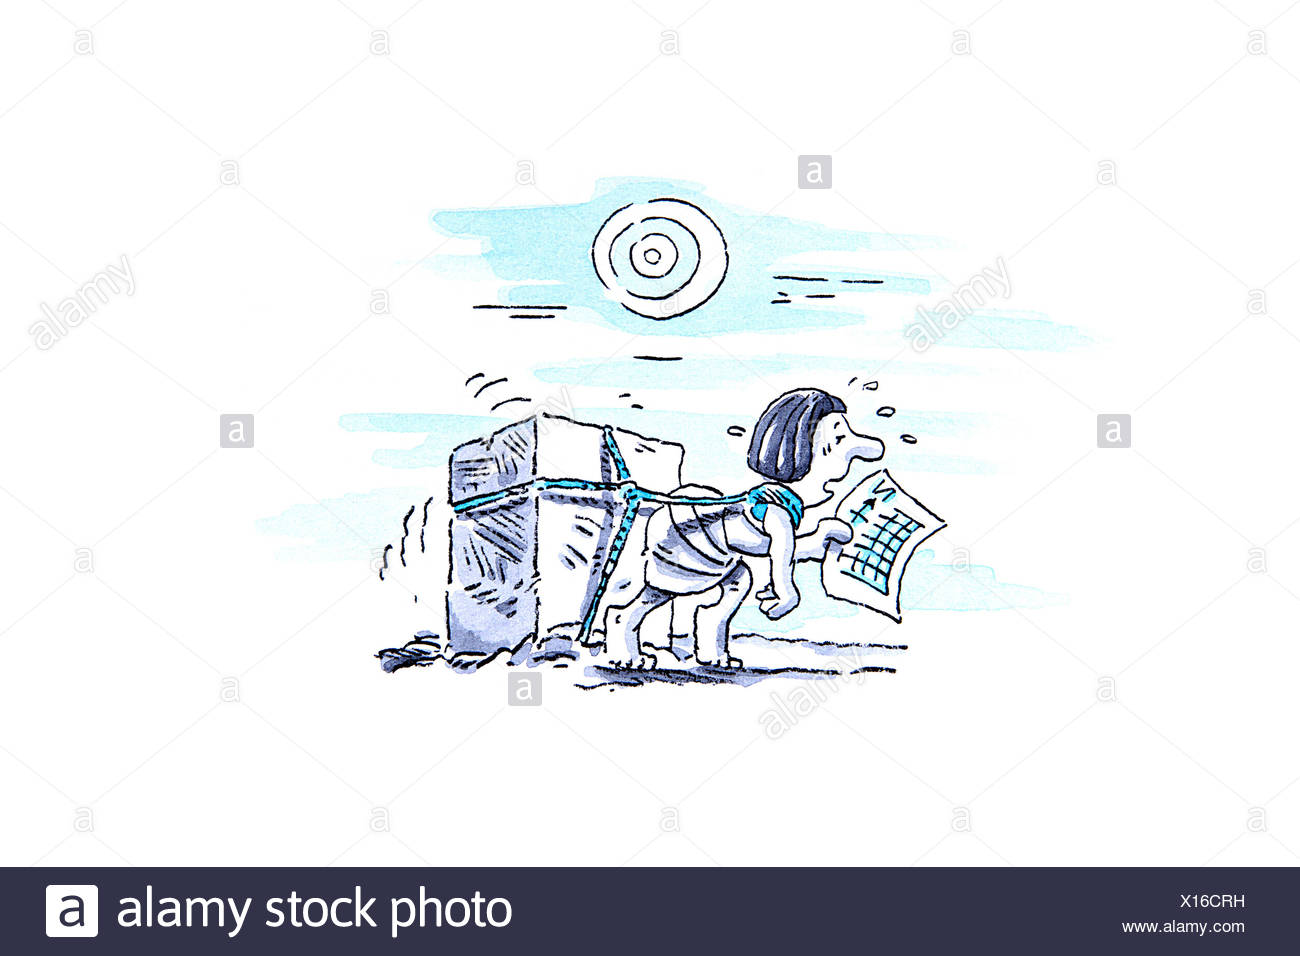 Excessive workload, conceptual artwork - Stock Image